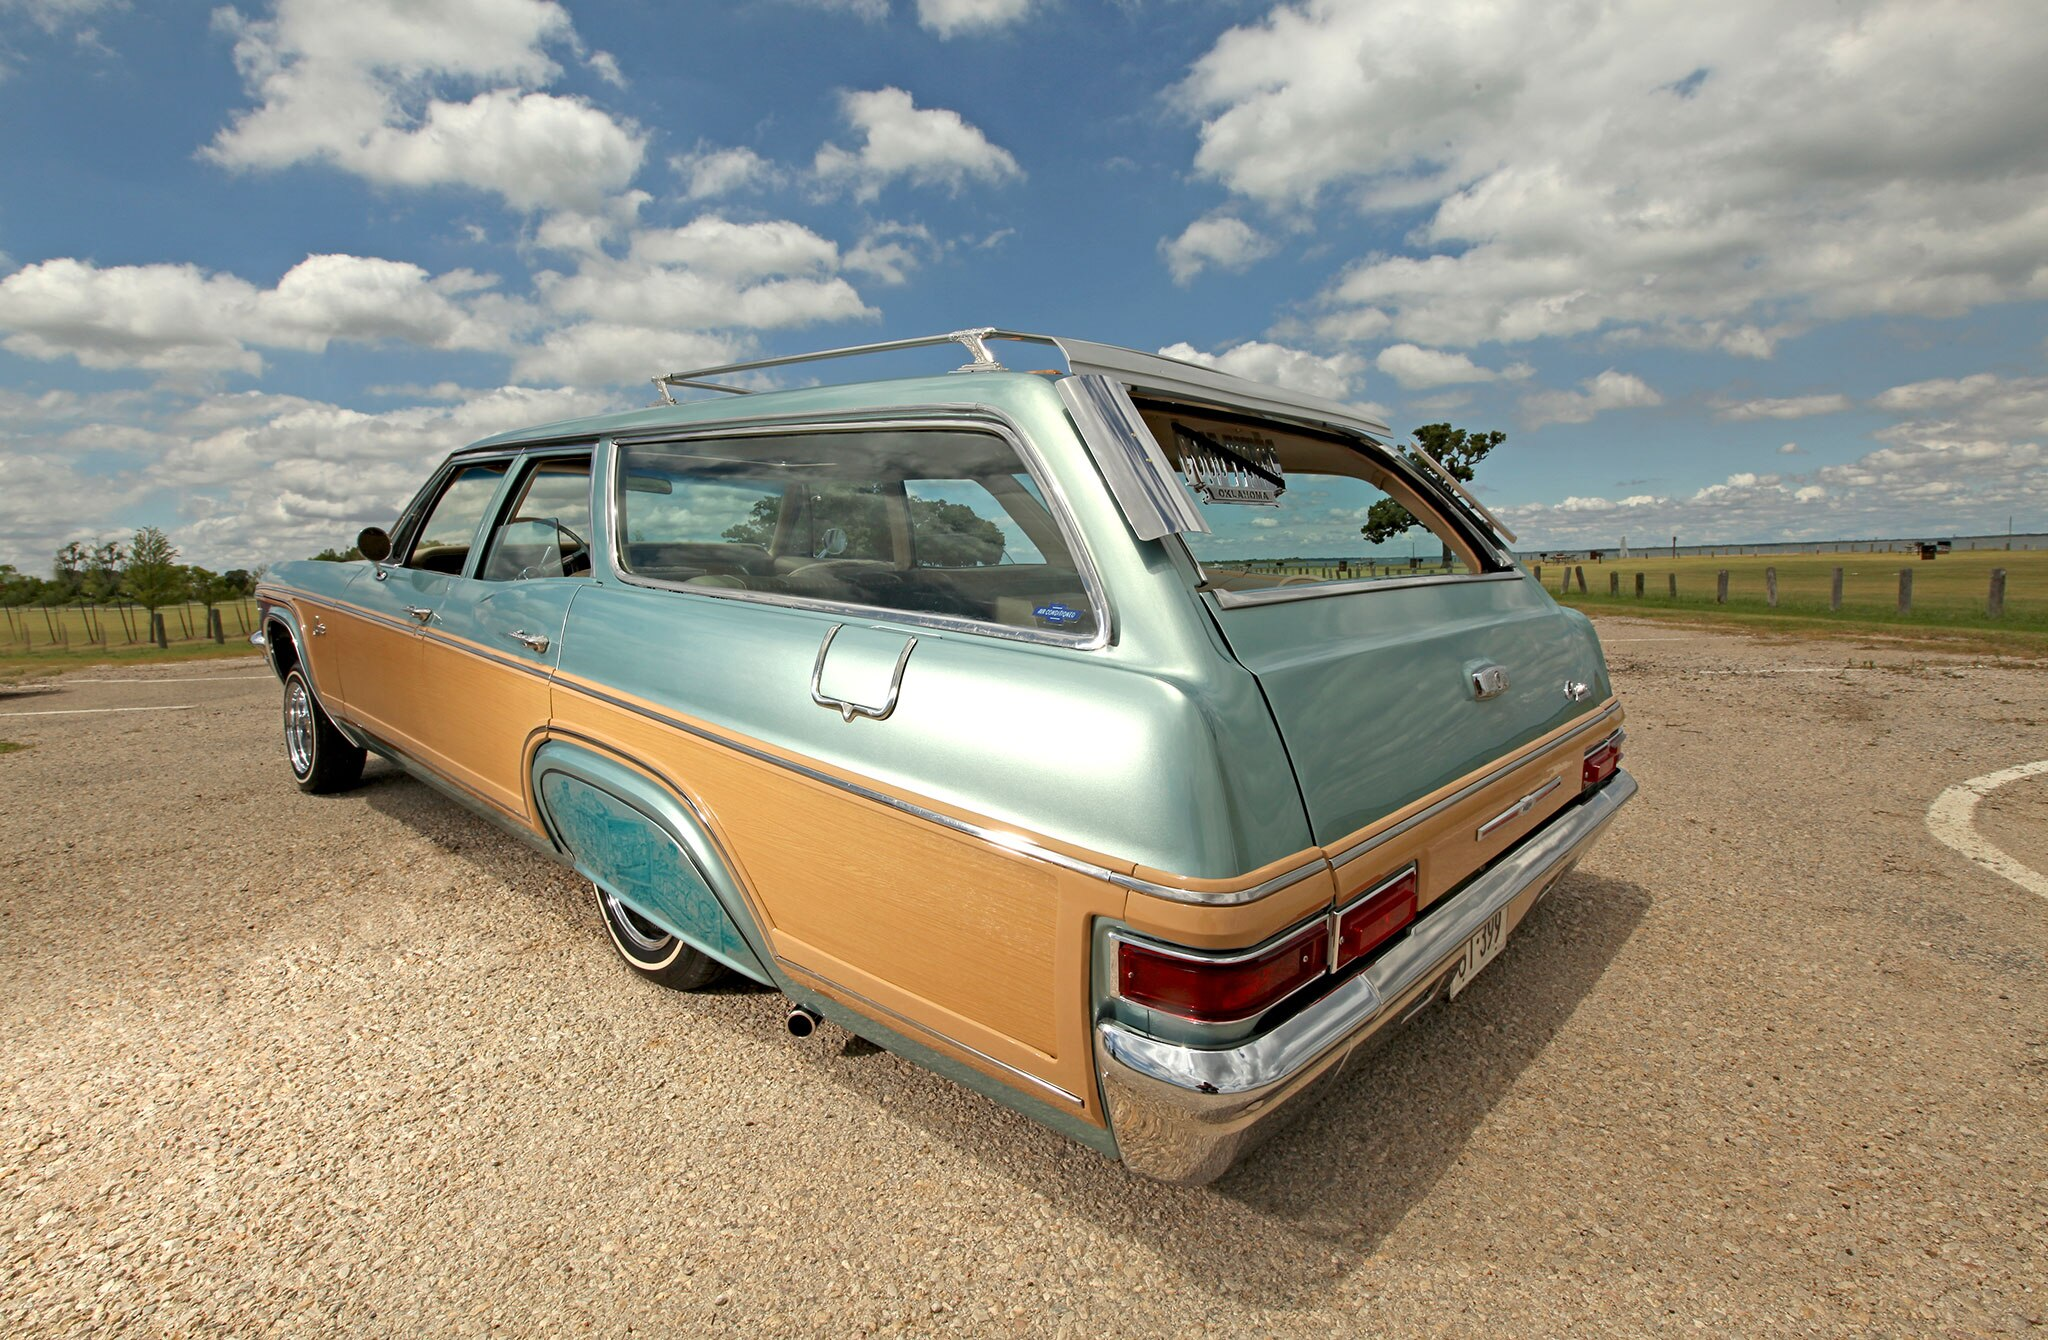 1966 Chevy Caprice Station Wagon   I had just made a ...   1966 Chevrolet Caprice Wagon